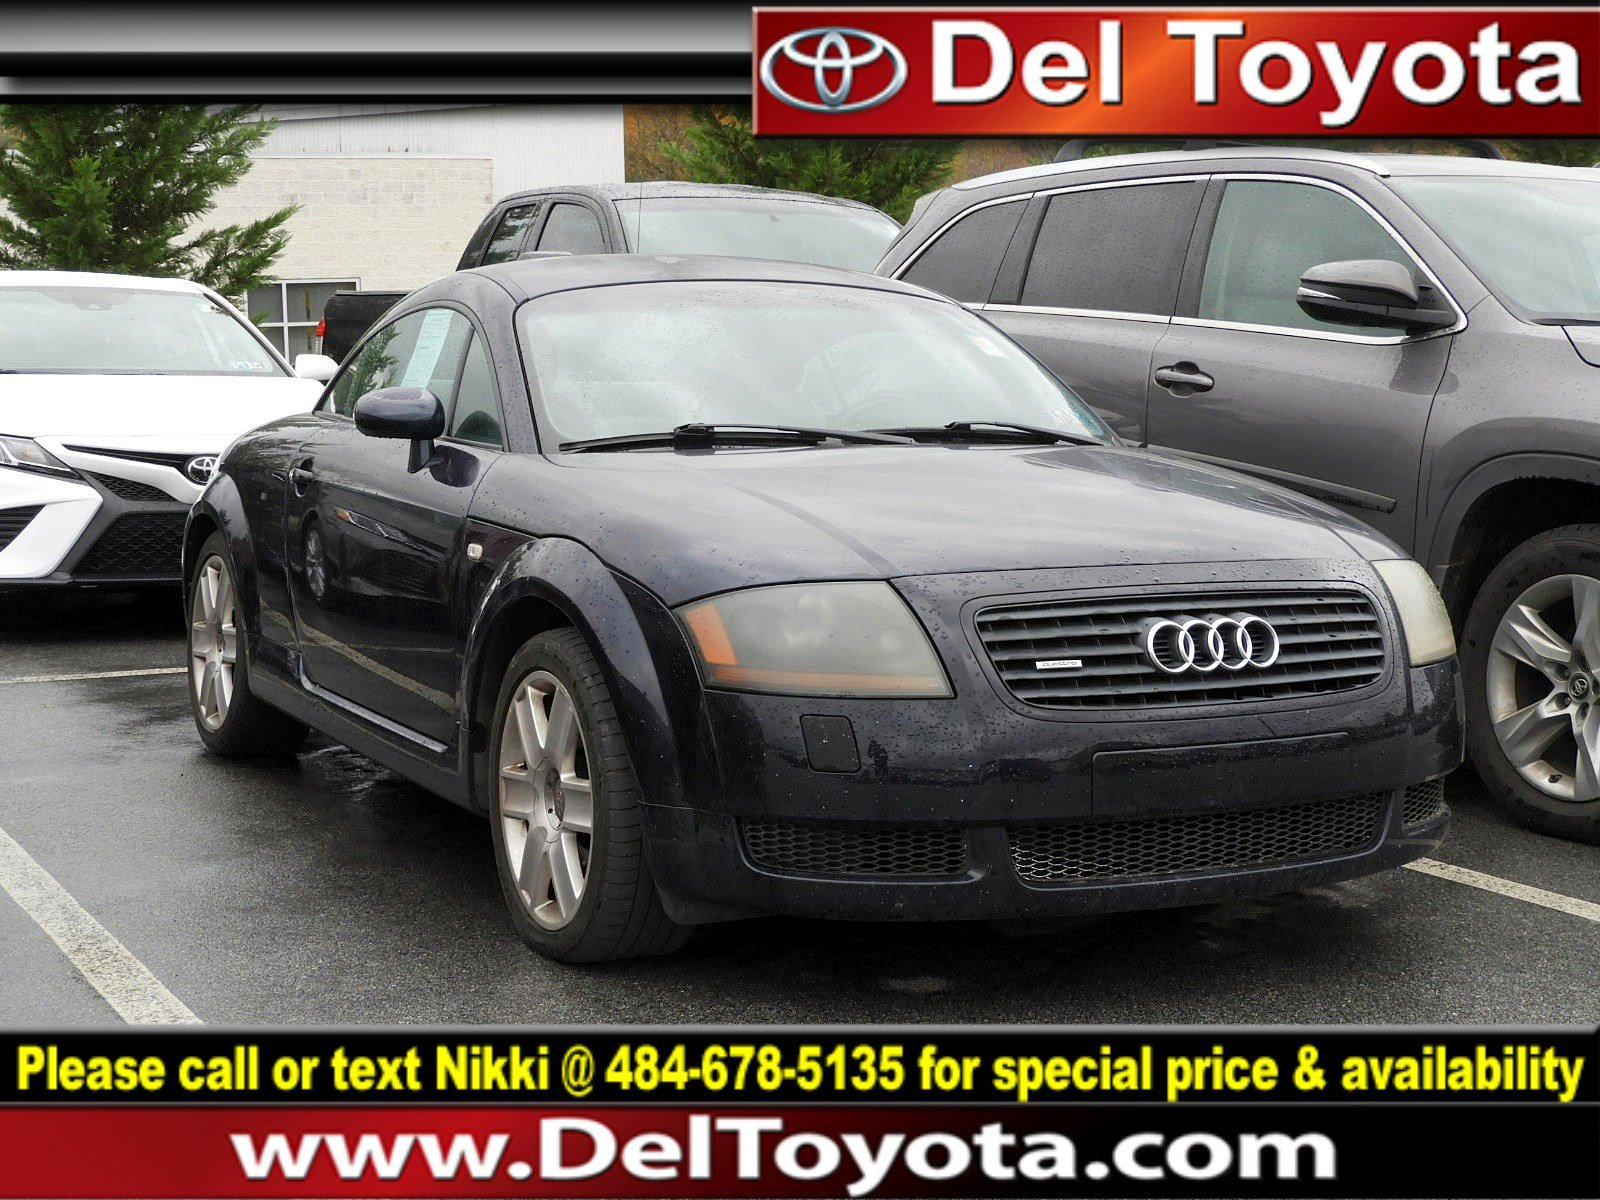 Photo Used 2002 Audi TT For Sale  Serving Thorndale, West Chester, Thorndale, Coatesville, PA  VIN TRUWT28N521020843